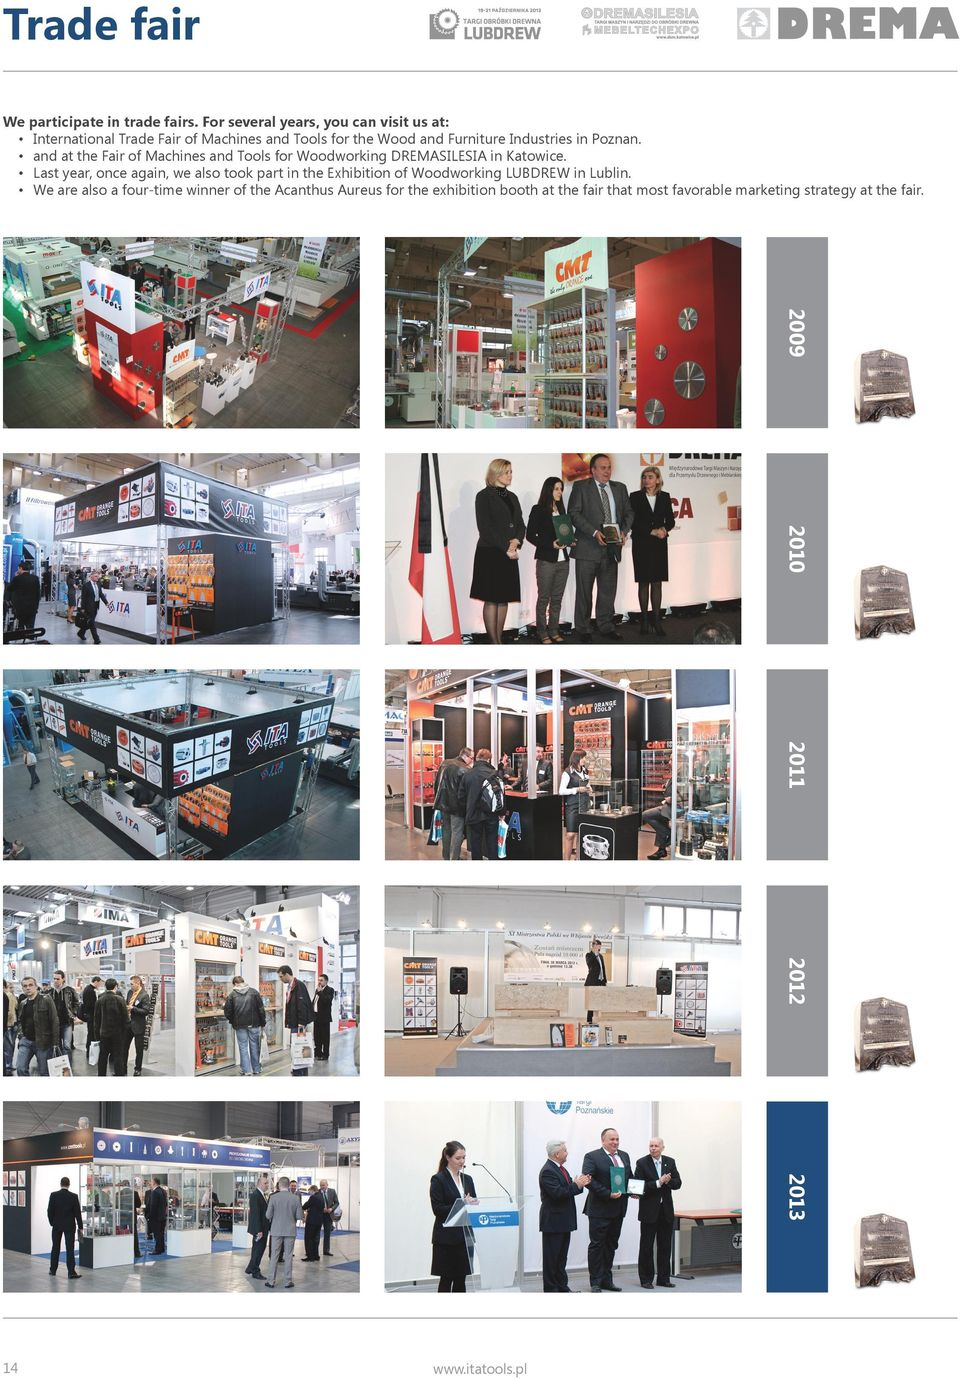 Poznan. and at the Fair of Machines and Tools for Woodworking DREMASILESIA in Katowice.